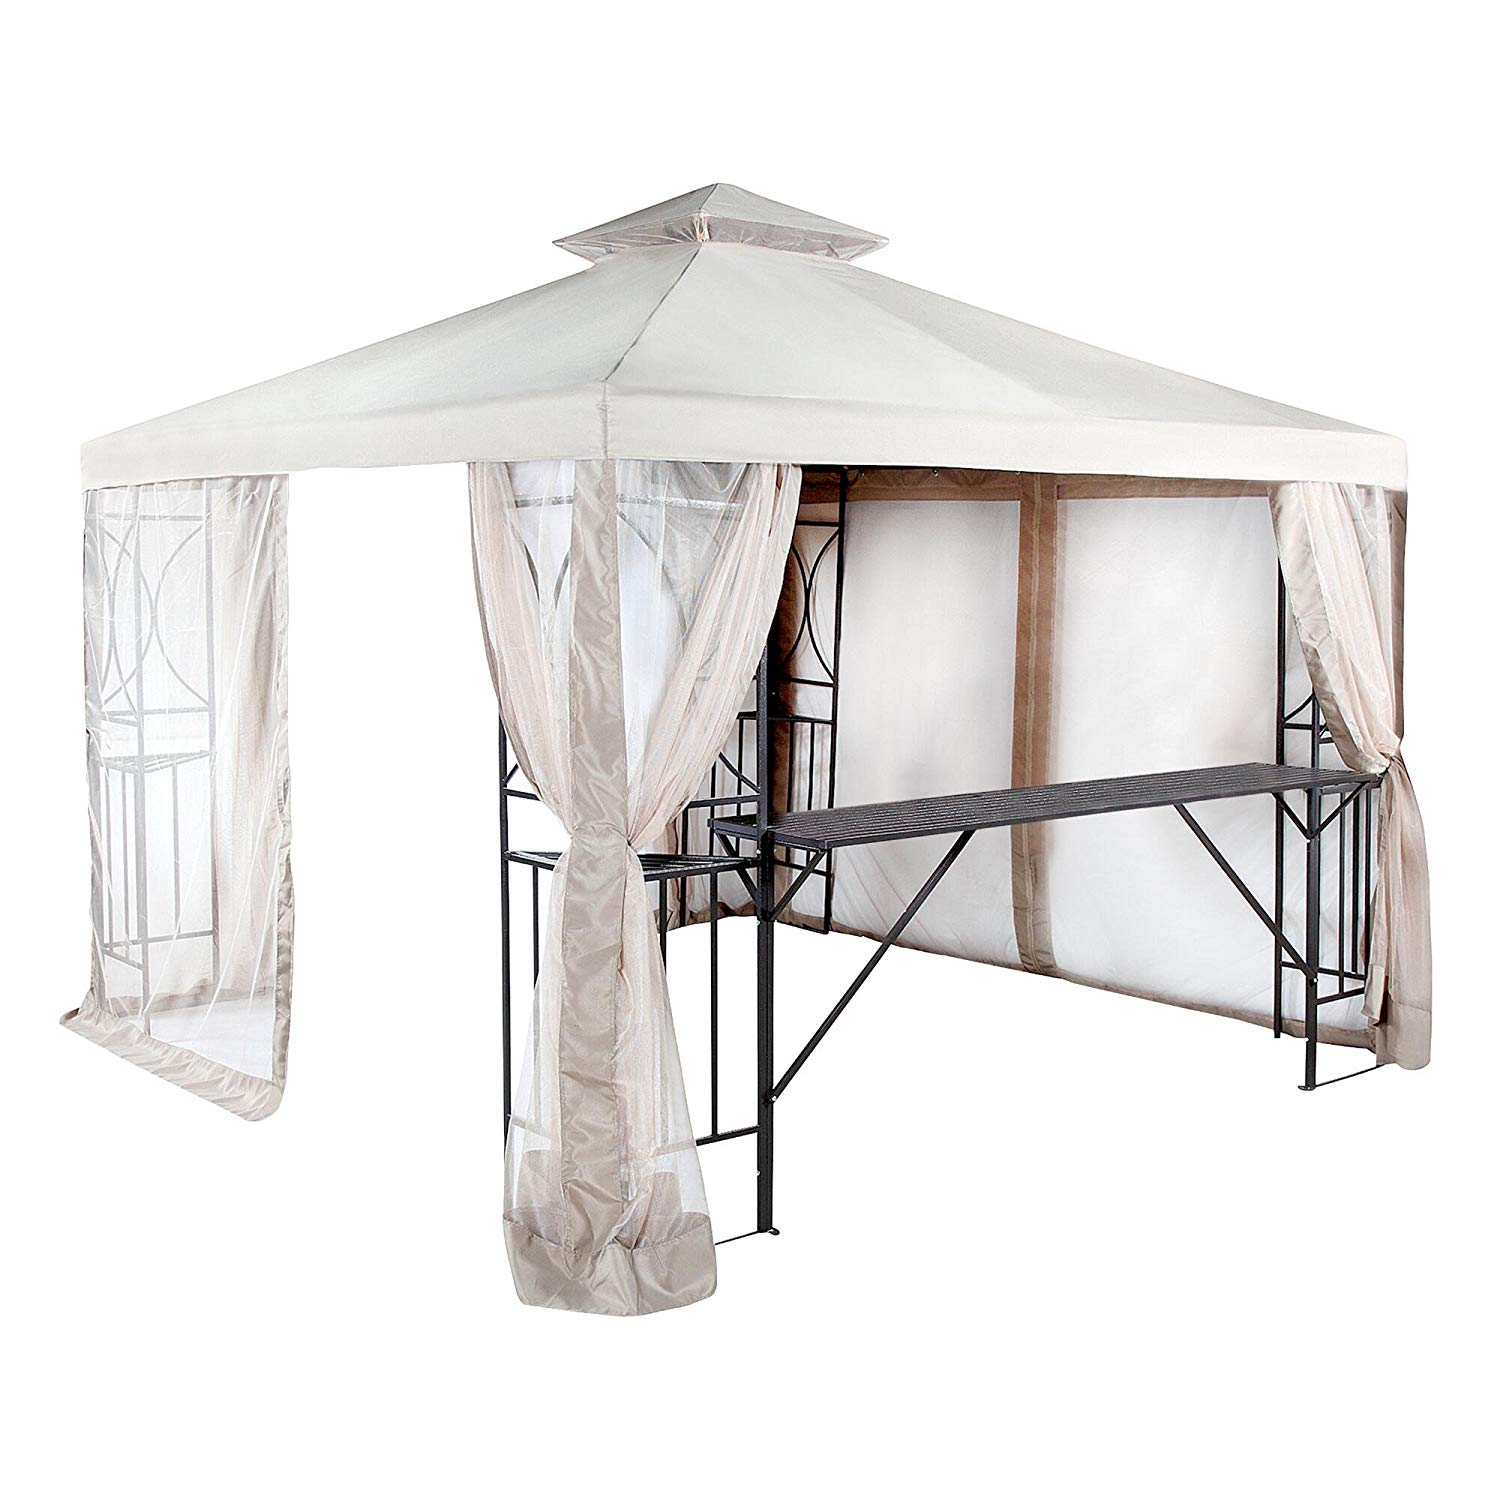 Garden Winds Replacement Canopy Top Cover and Netting for the 10x10 Crescent Gazebo - RipLock 350